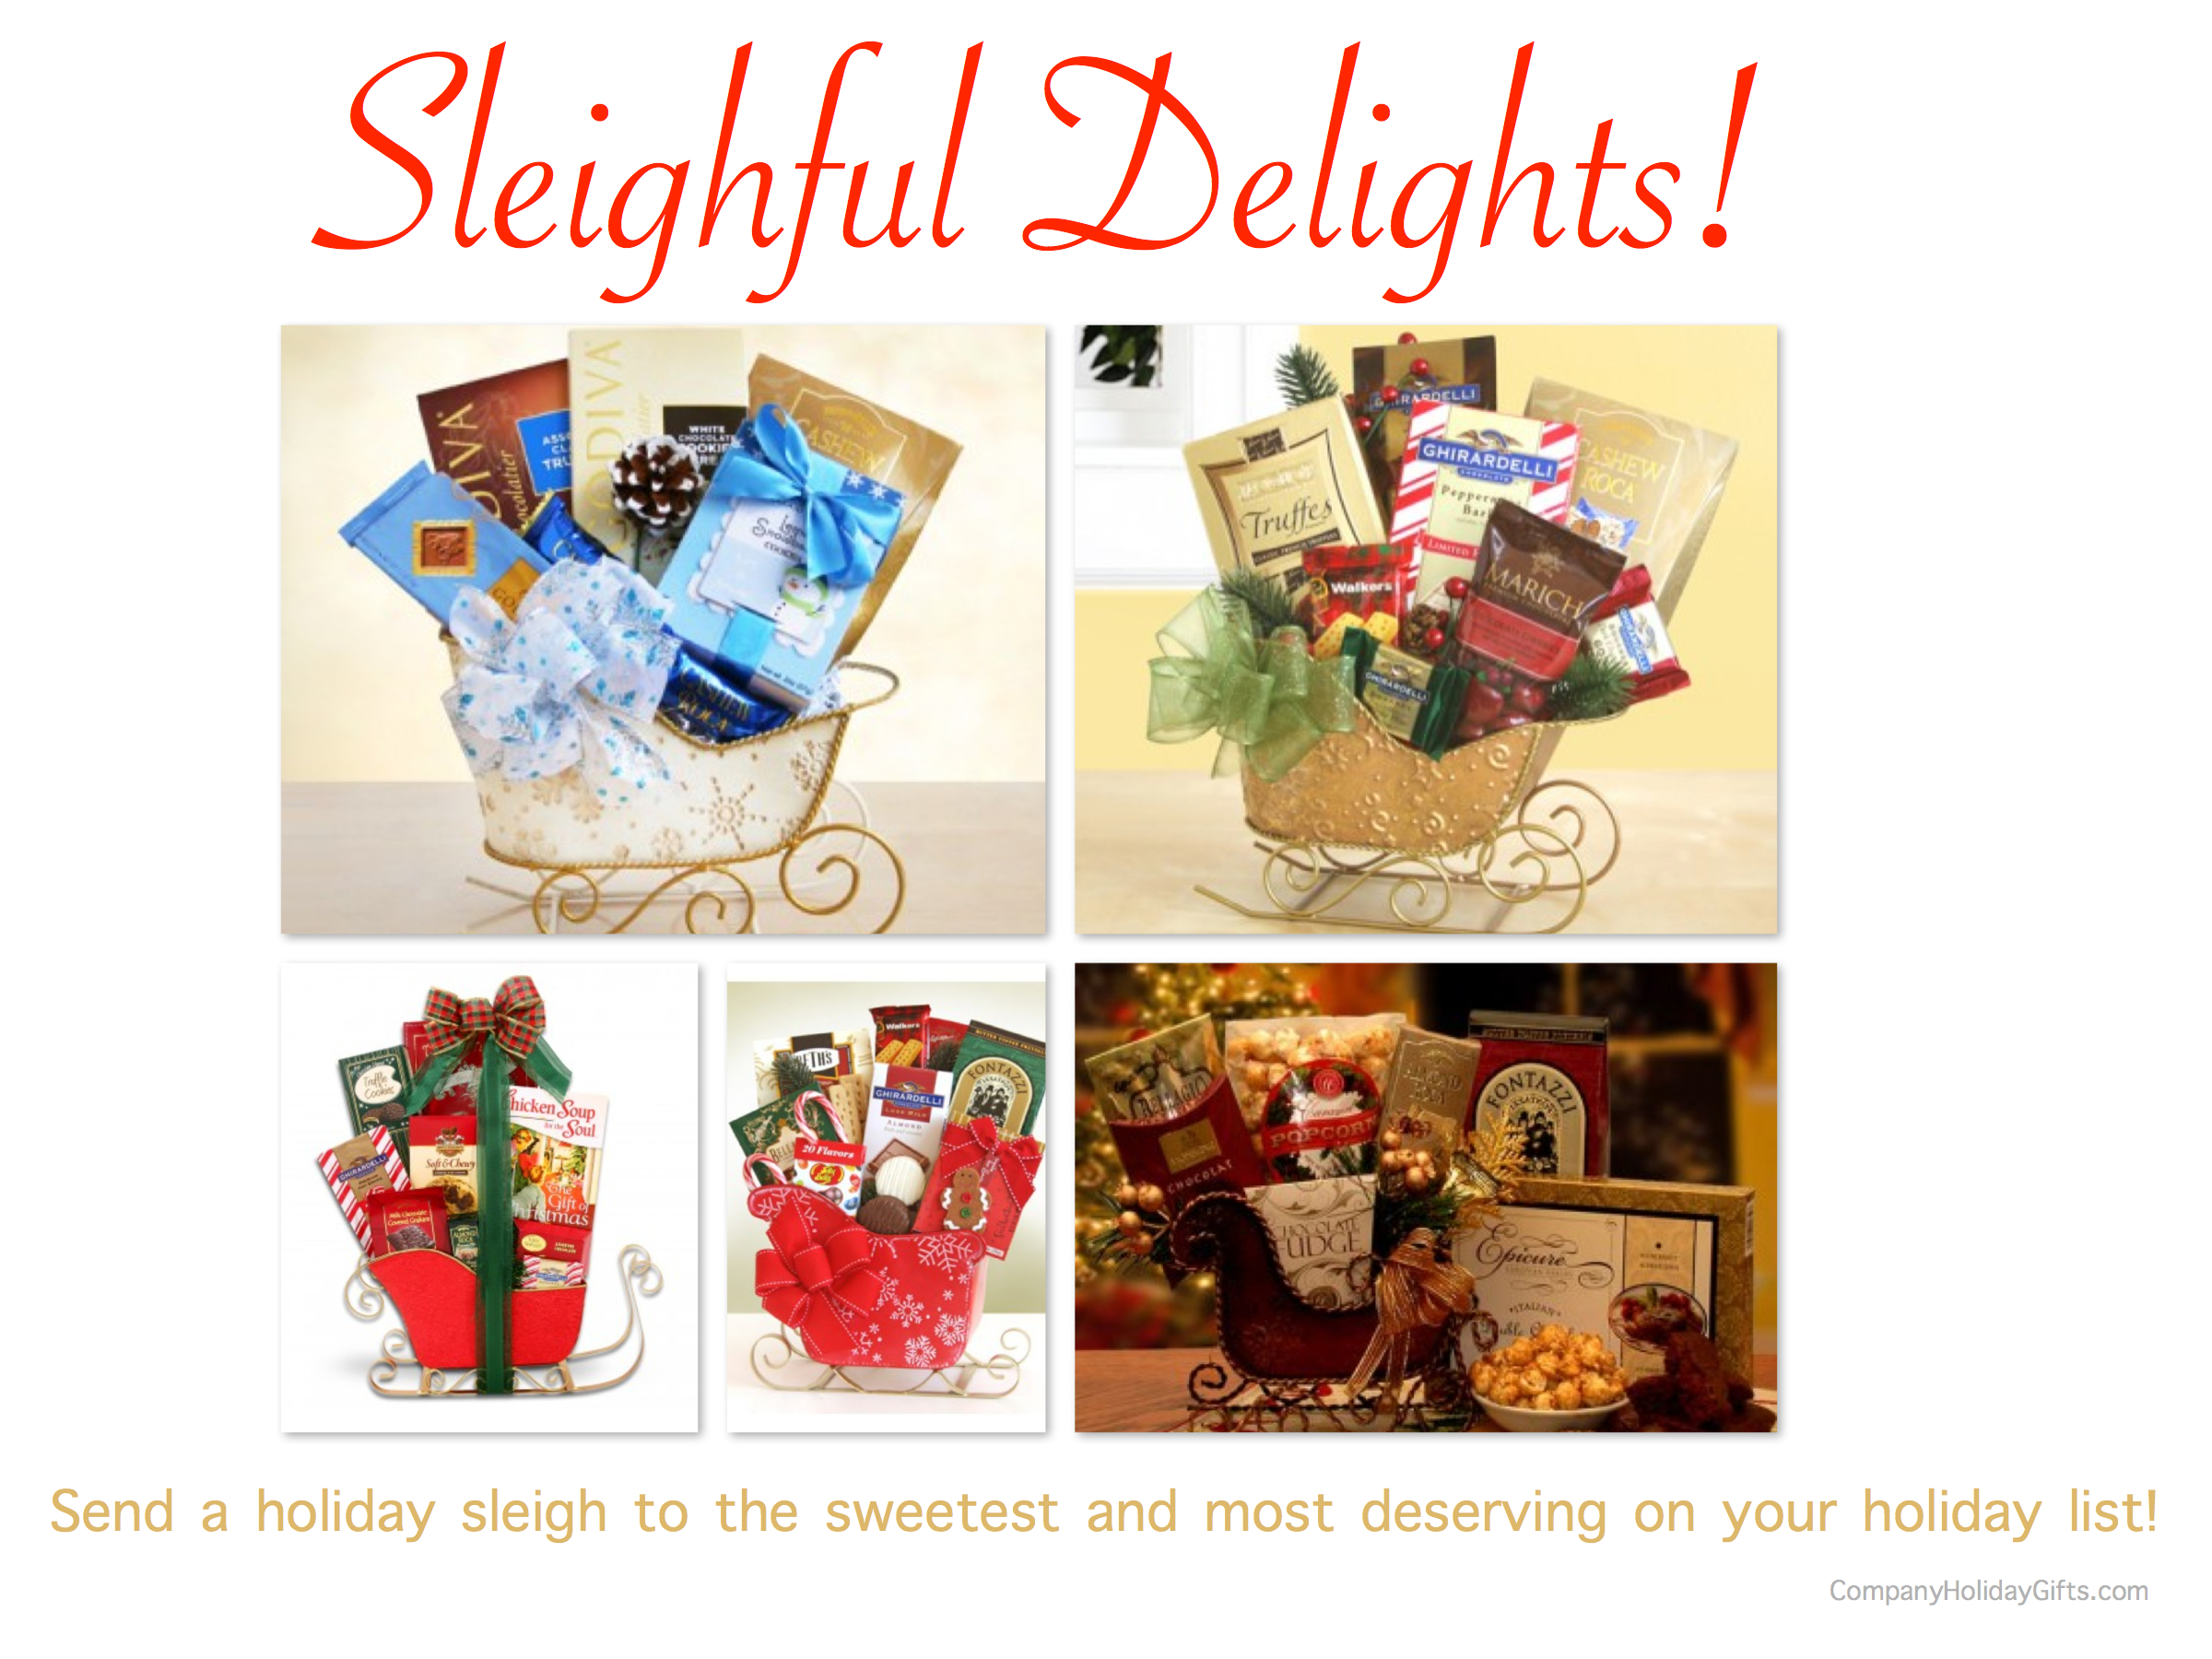 Sleighful Delights Holiday Gifts, 20 Best Company Holiday Gift Ideas Under $100.00, holiday gift sleighs